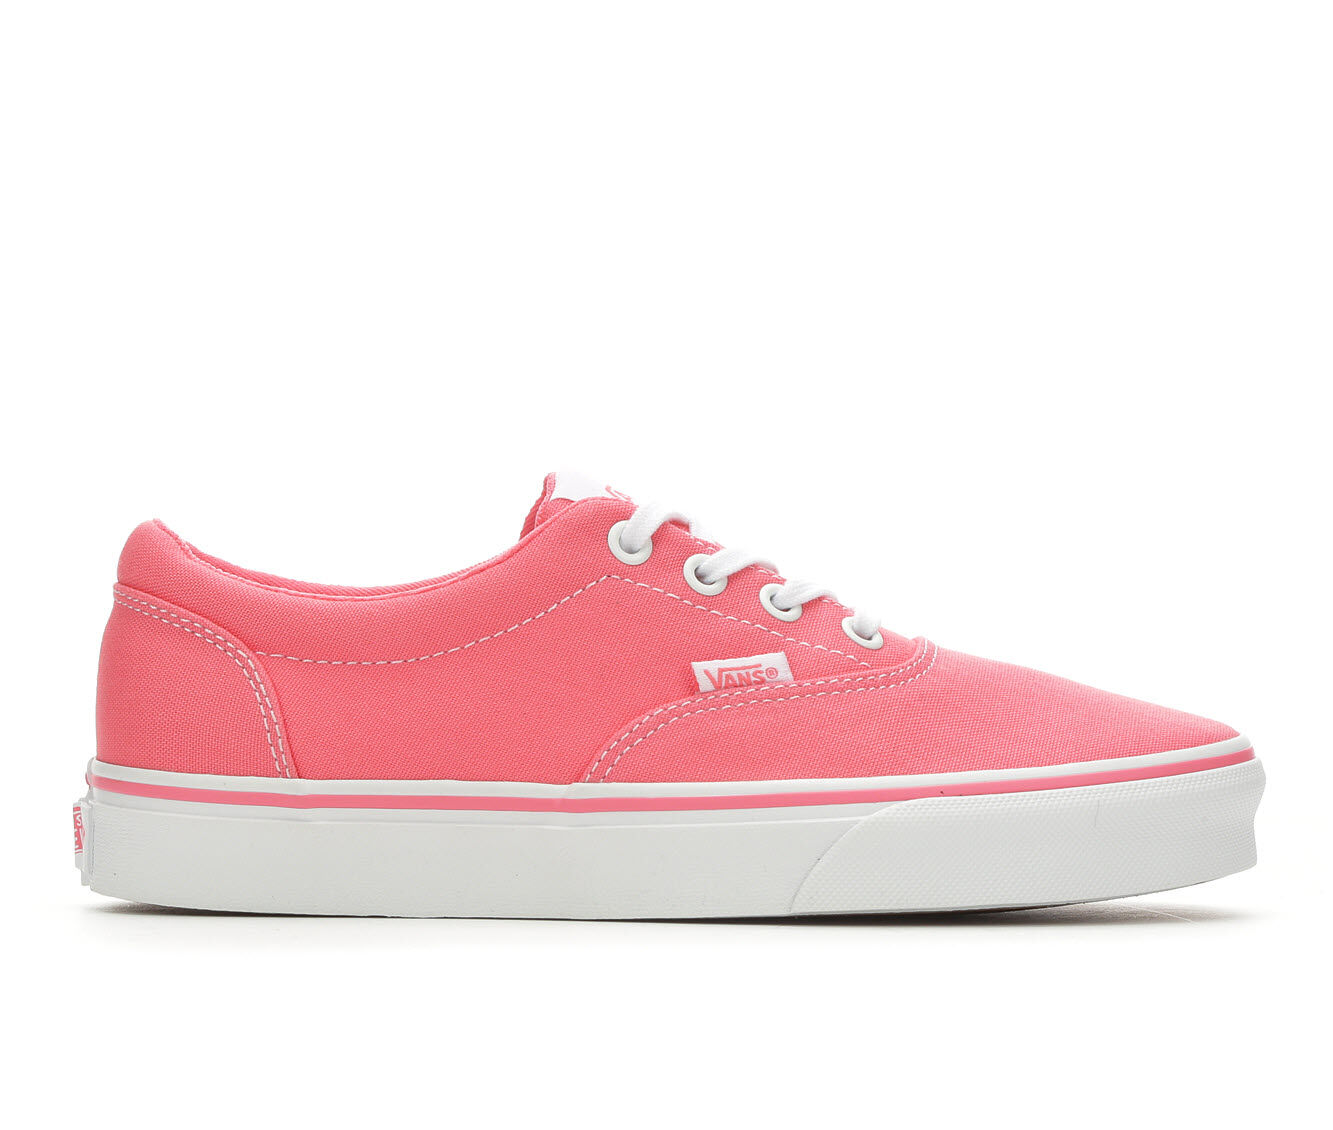 Sale Authentic Women's Vans Doheny Skate Shoes Strawberry Pink